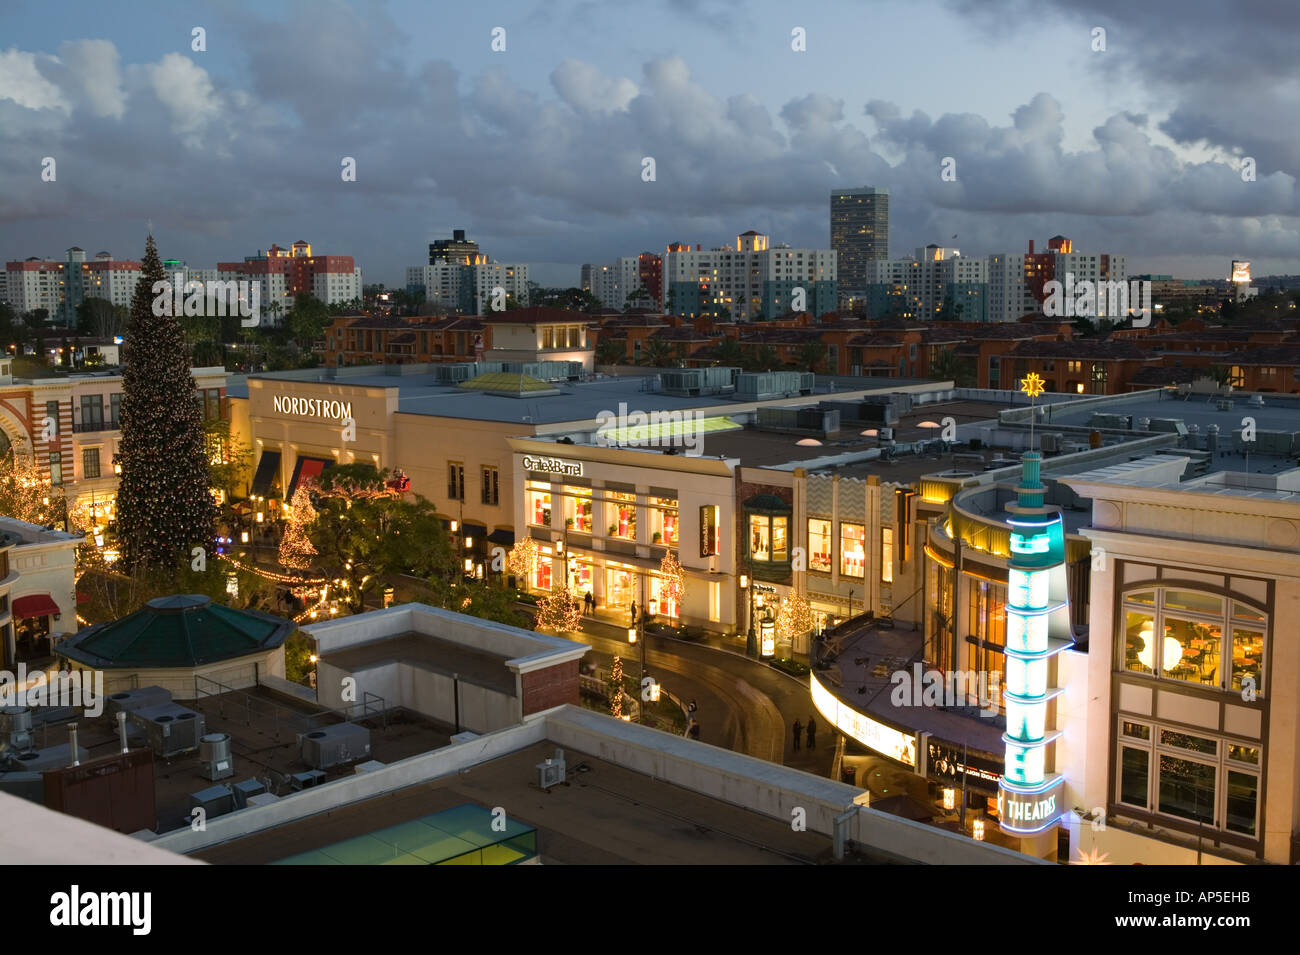 Apartment listings in California. Find apartments for rent in Los Angeles, Santa Monica, Brentwood, Hollywood, and more. - California Apartments for Rent | Pacific Listings.